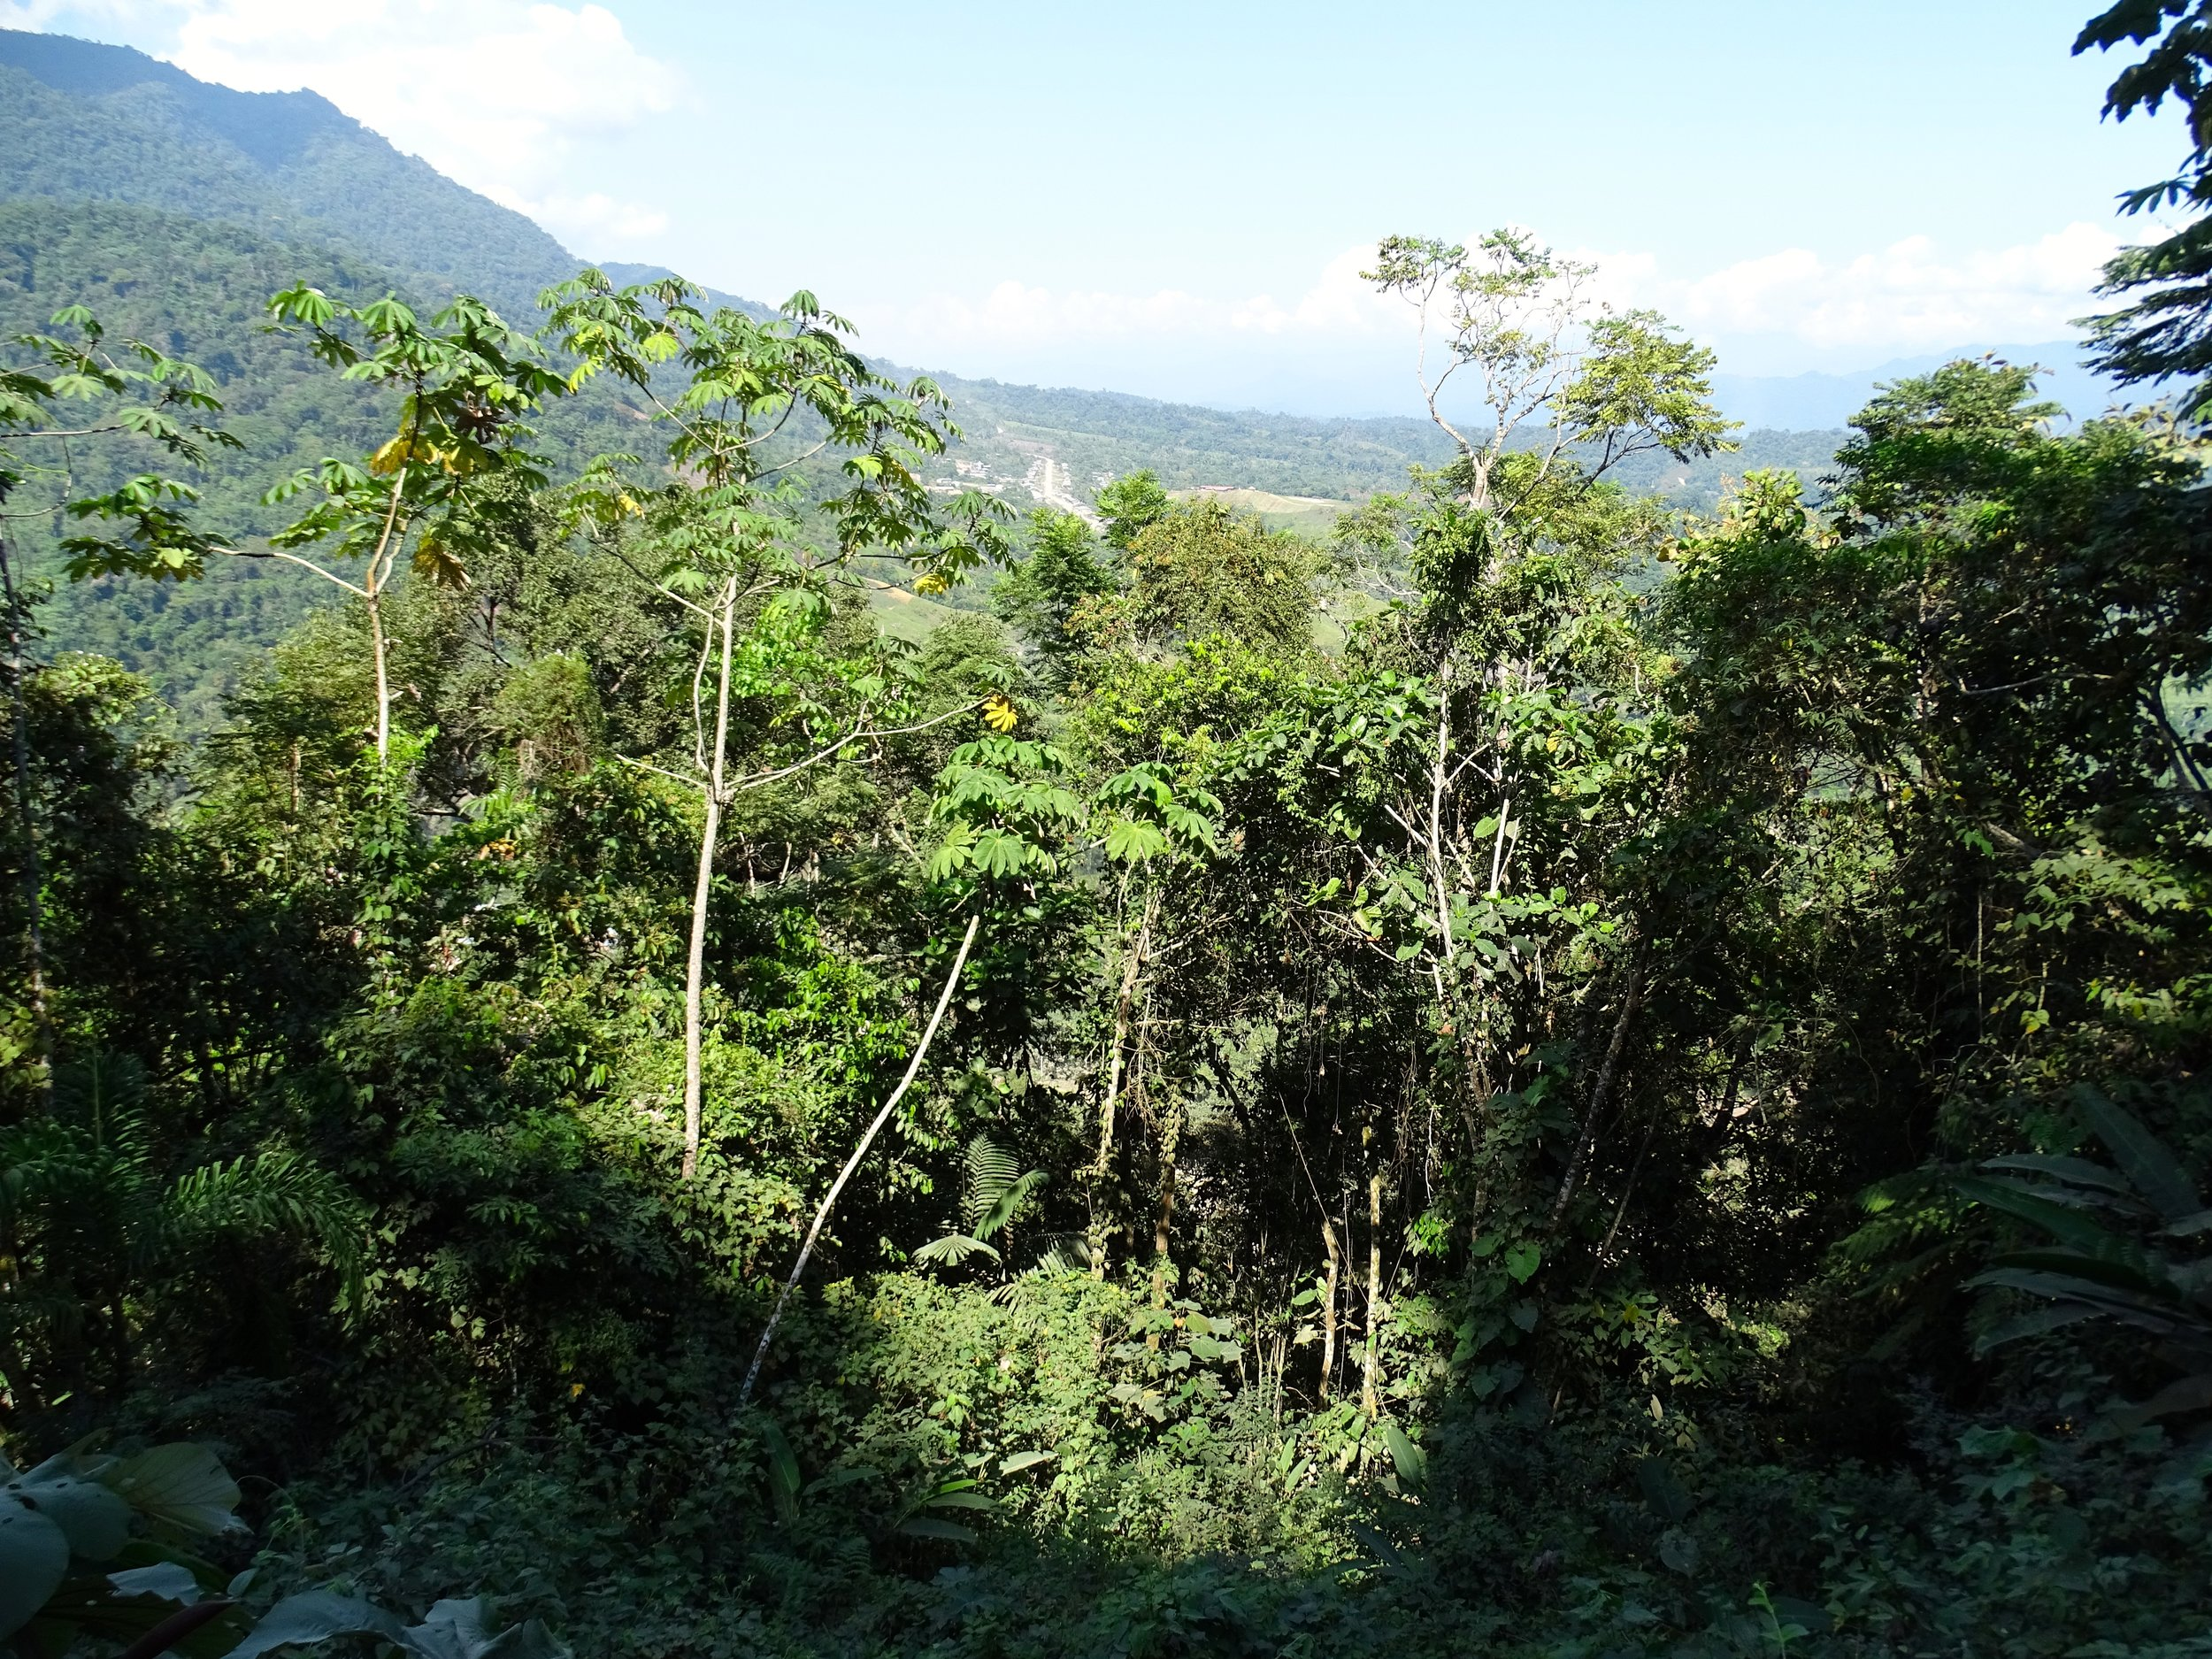 The road cuts sometimes reveal how dense and scrambled the jungle growth is.